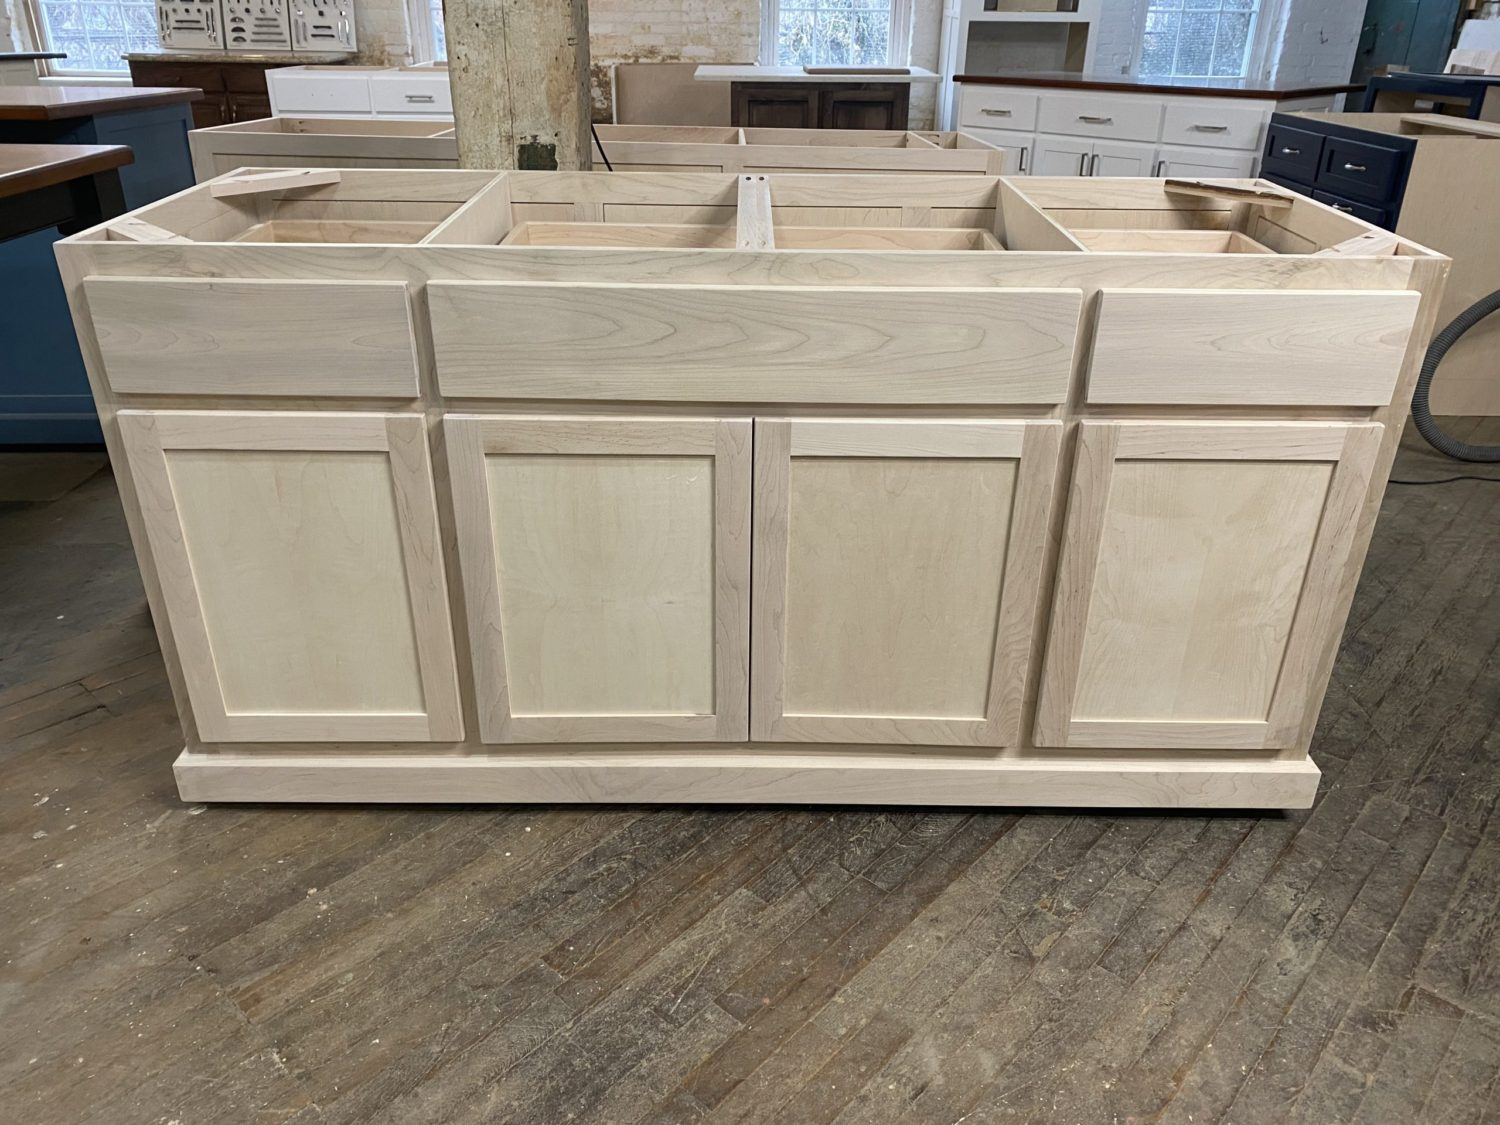 Unfinished Ready to Paint Cabinets